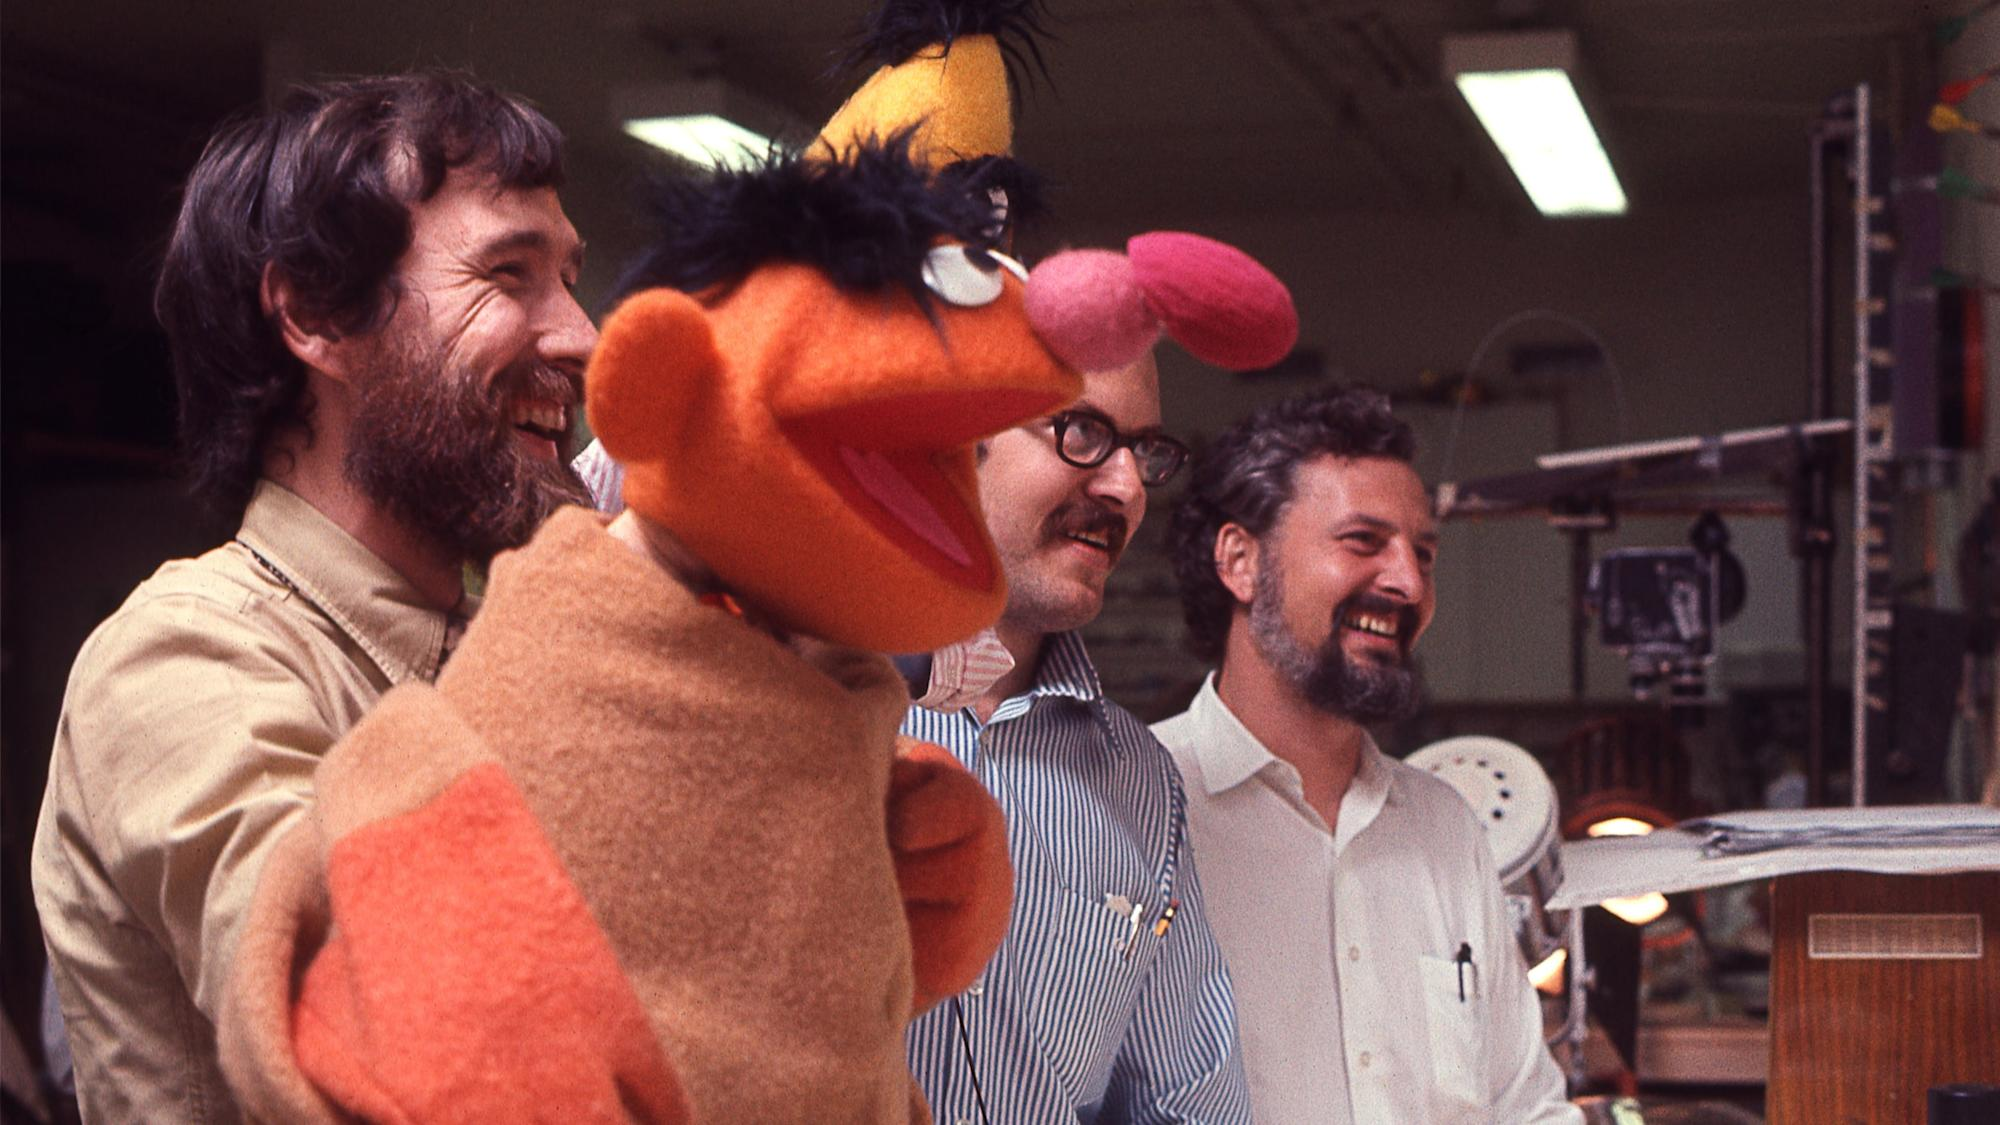 'Sesame Street' secrets revealed: Hot Doc film reveals '100 per cent the reason' why iconic kid's show was really created